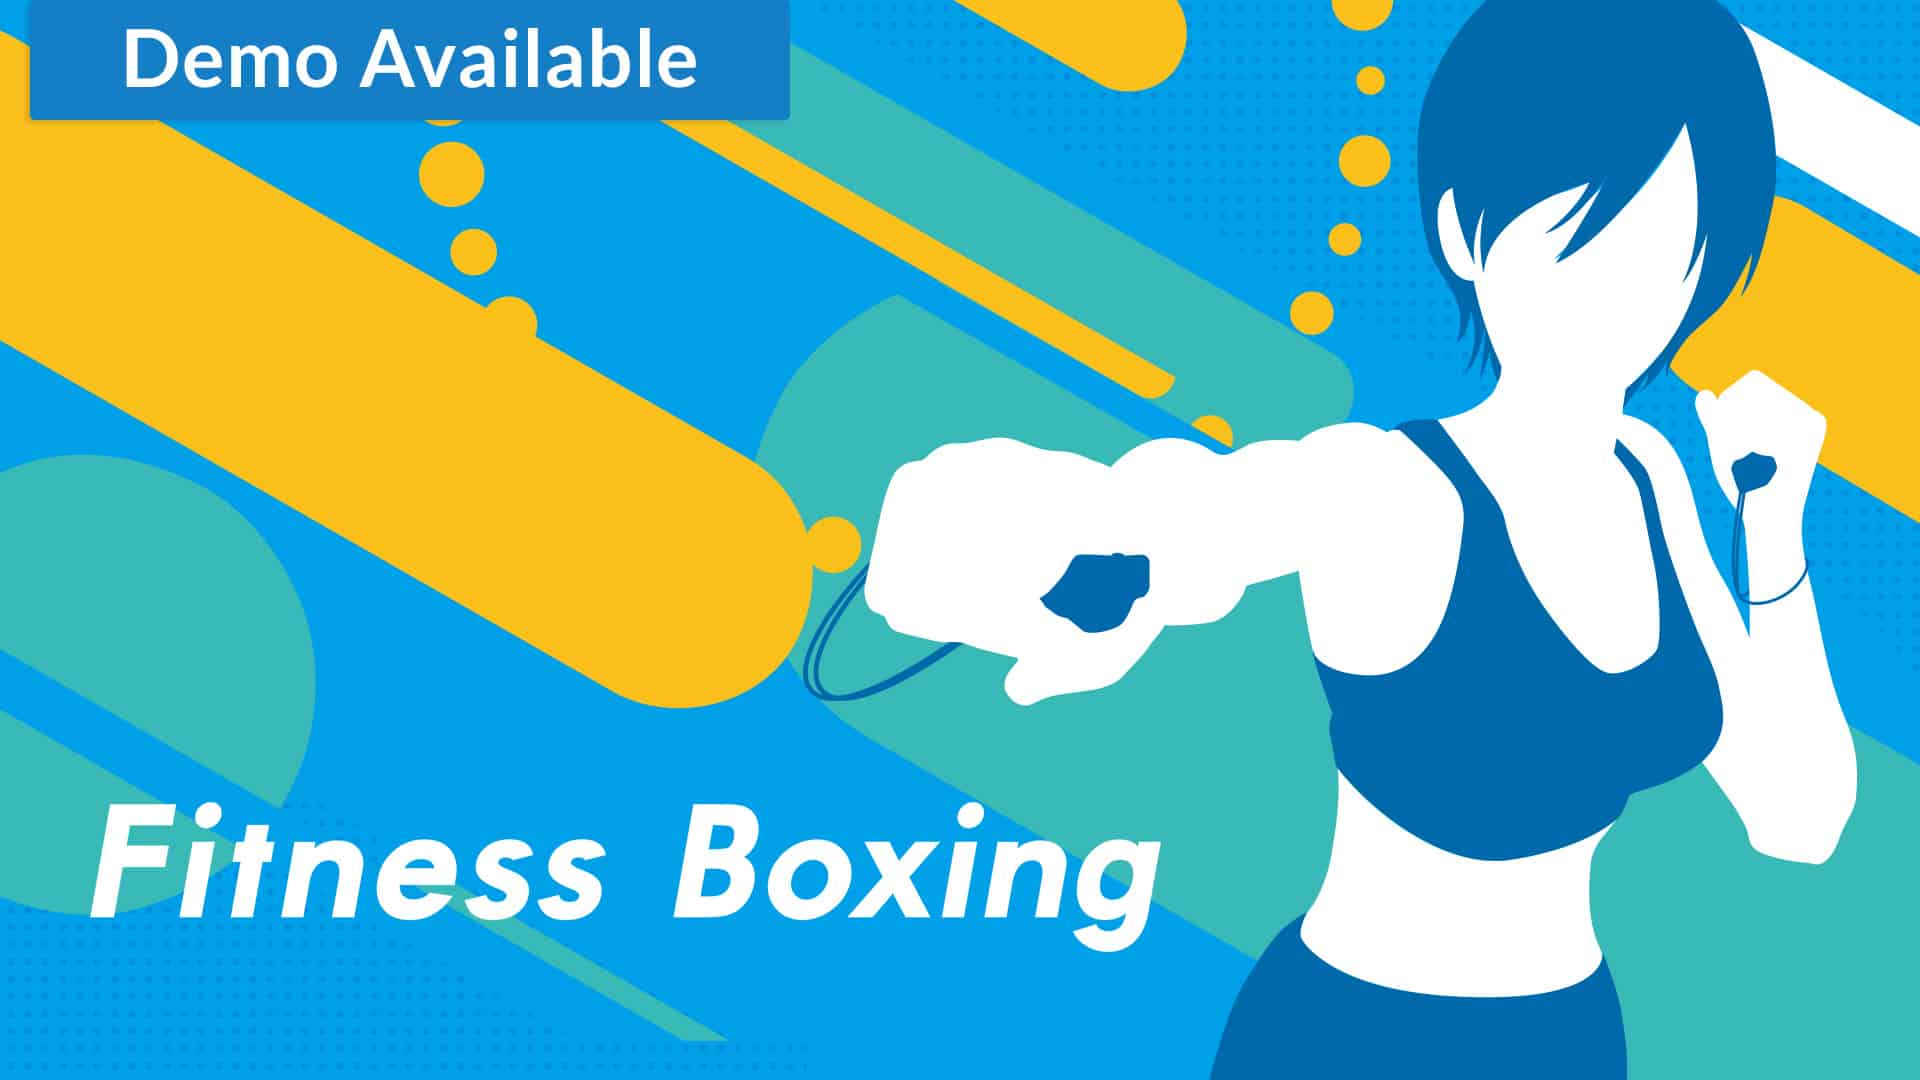 Fitness boxing has a demo, and you should totally download it